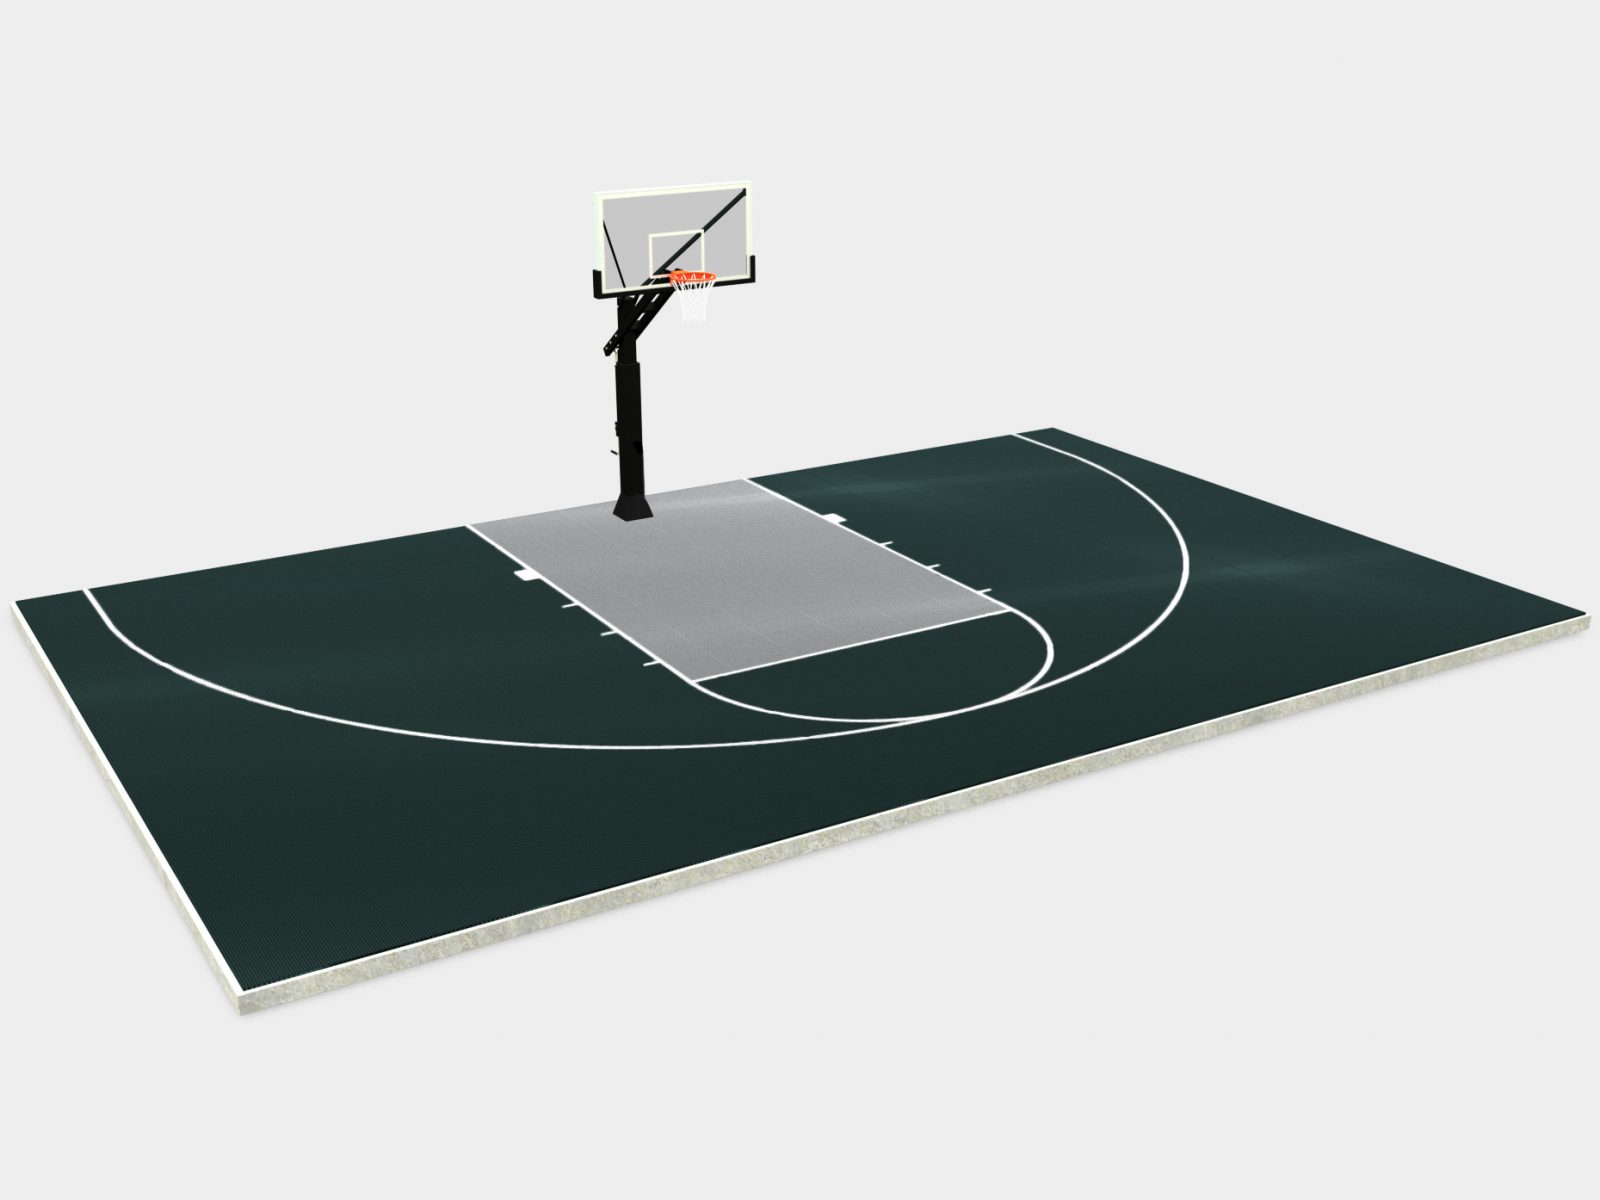 44' x 28' Basketball Half Court